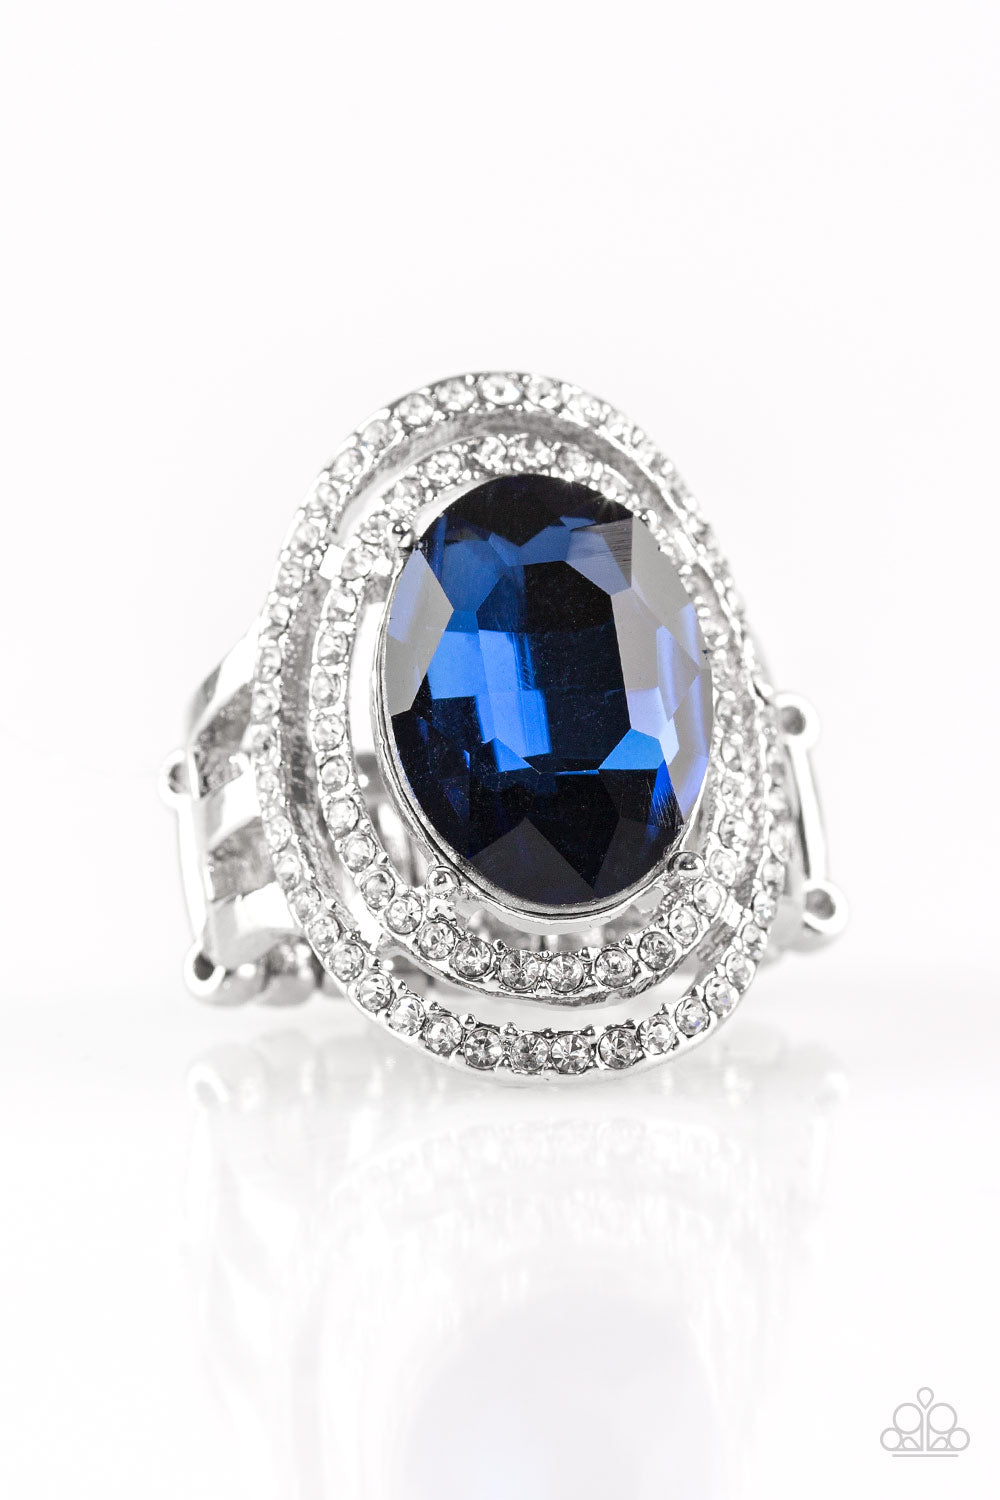 Paparazzi Accessories - Making History - Blue Ring - JMJ Jewelry Collection